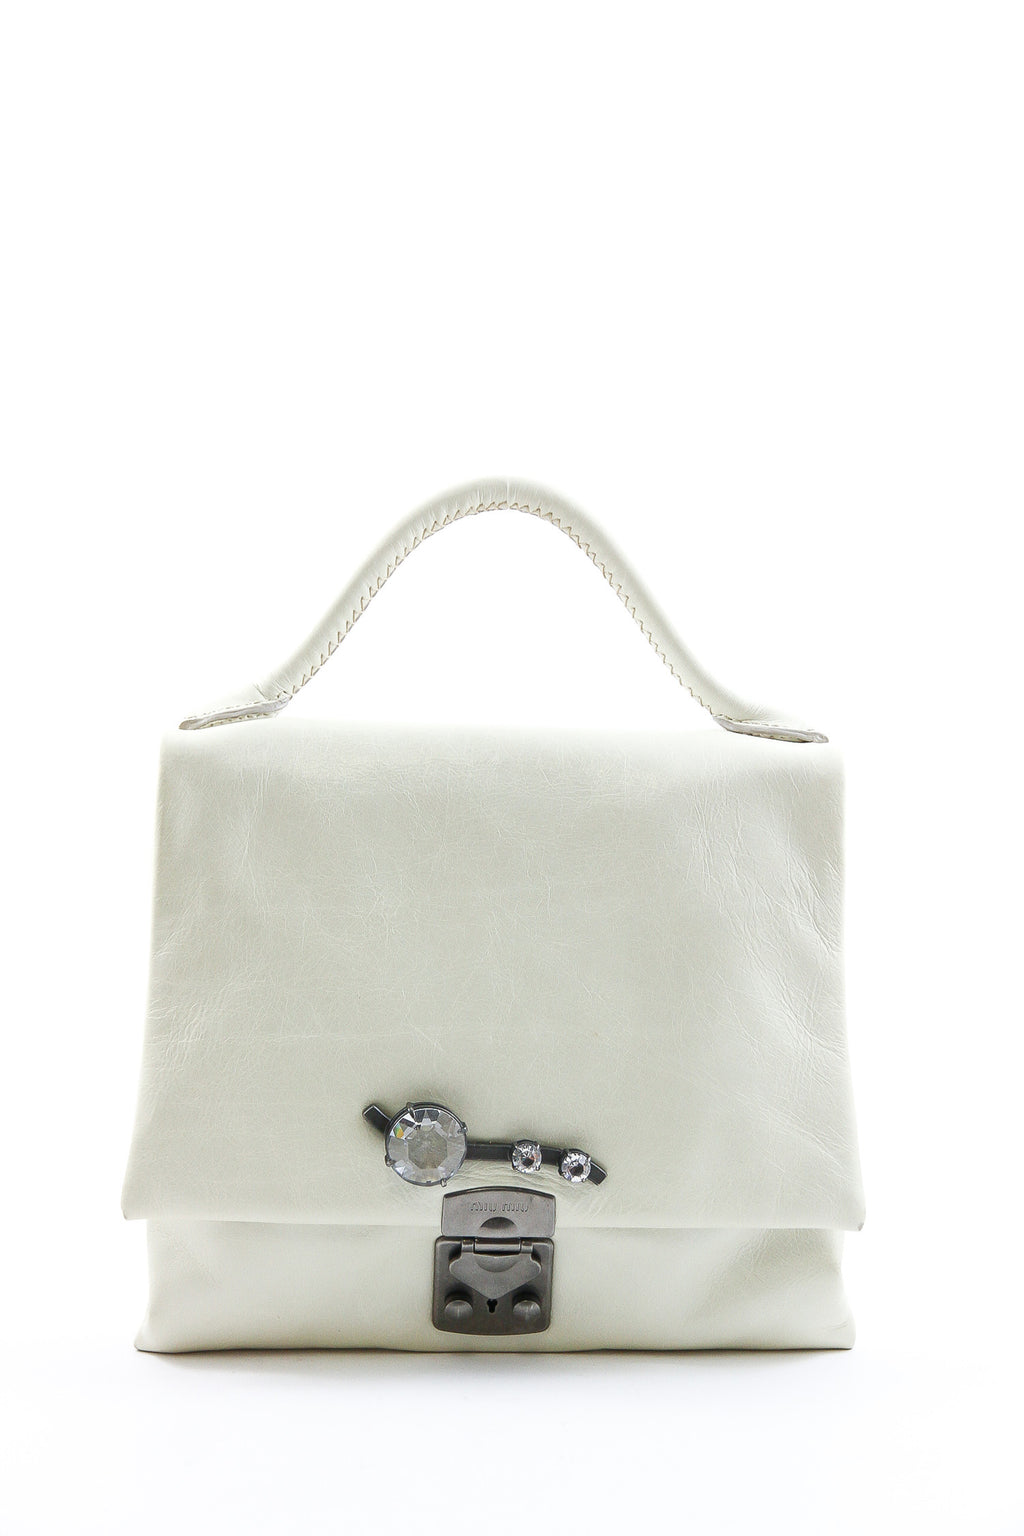 Miu Miu Off White Leather Crossbody with Jewel Detailing